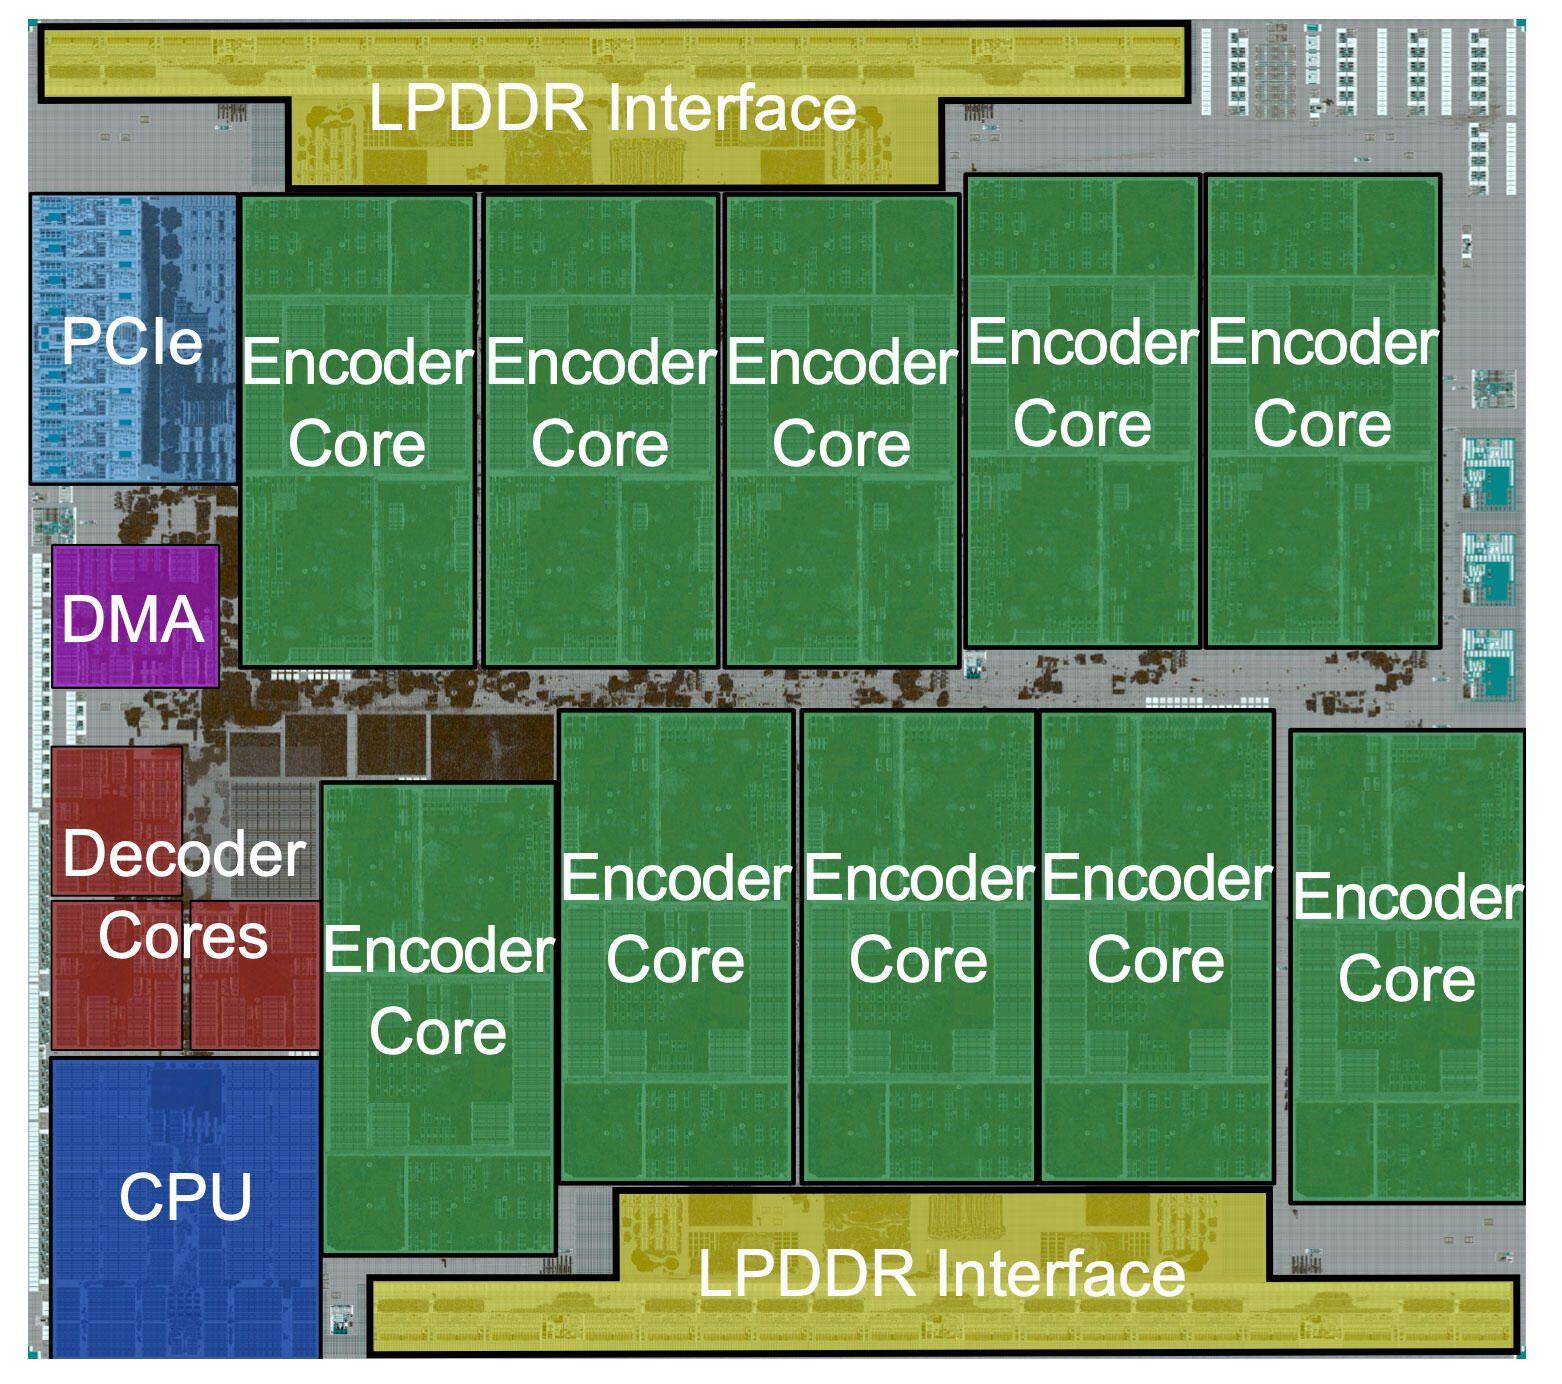 Google designed a chip called Argos to speed video processing at YouTube. Here's the chip's layout.